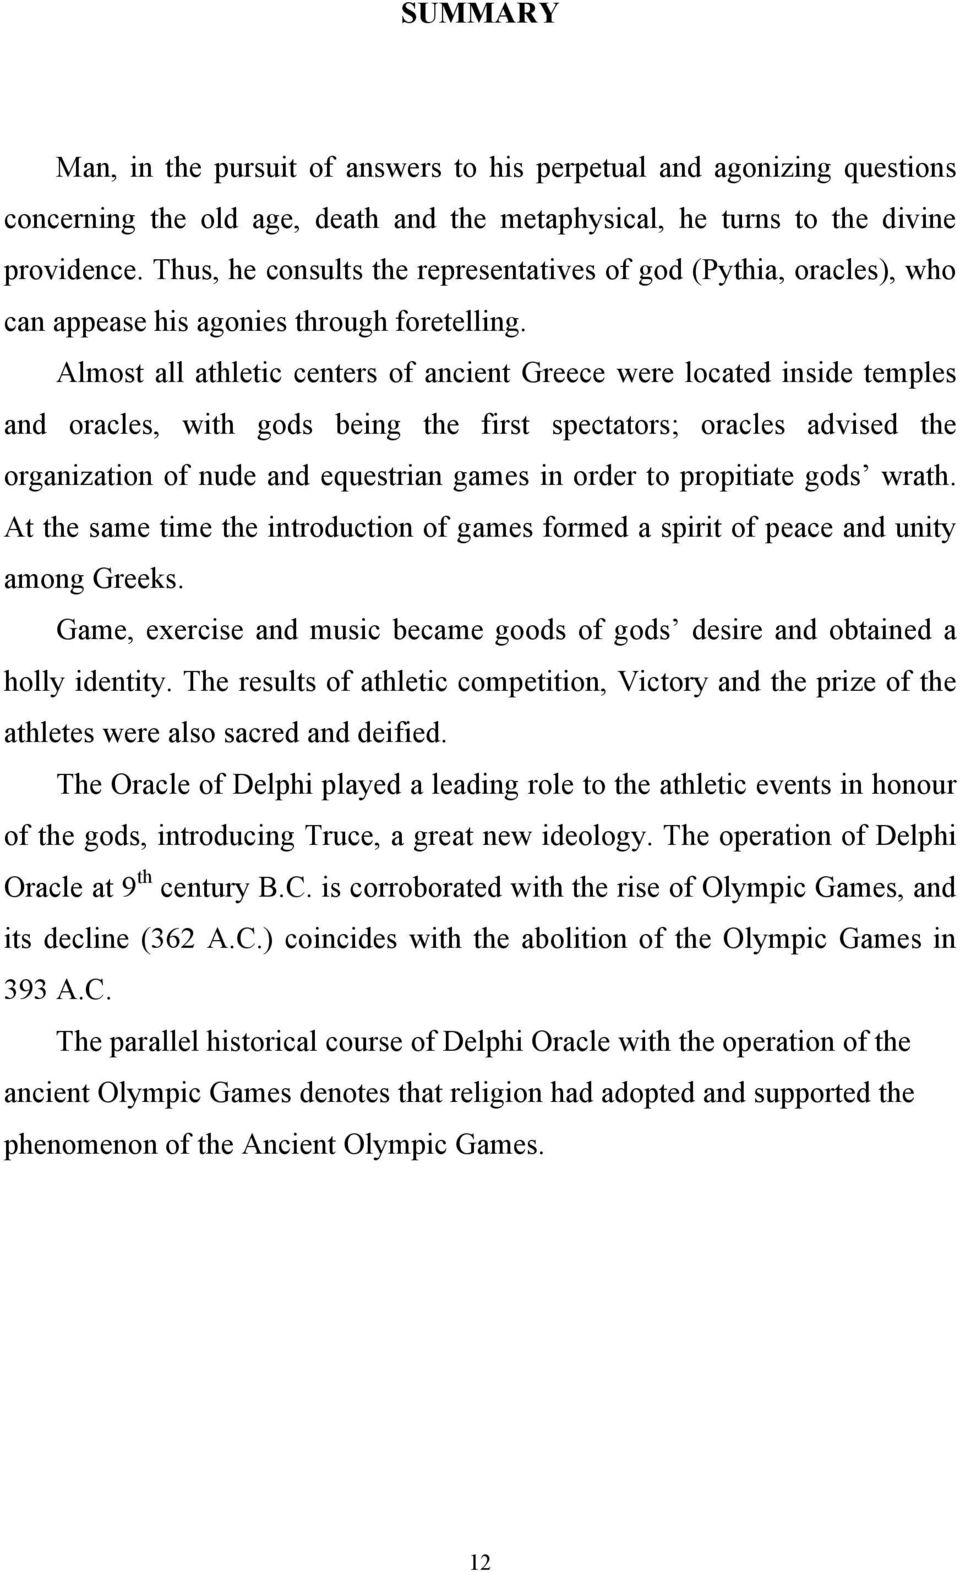 Almost all athletic centers of ancient Greece were located inside temples and oracles, with gods being the first spectators; oracles advised the organization of nude and equestrian games in order to